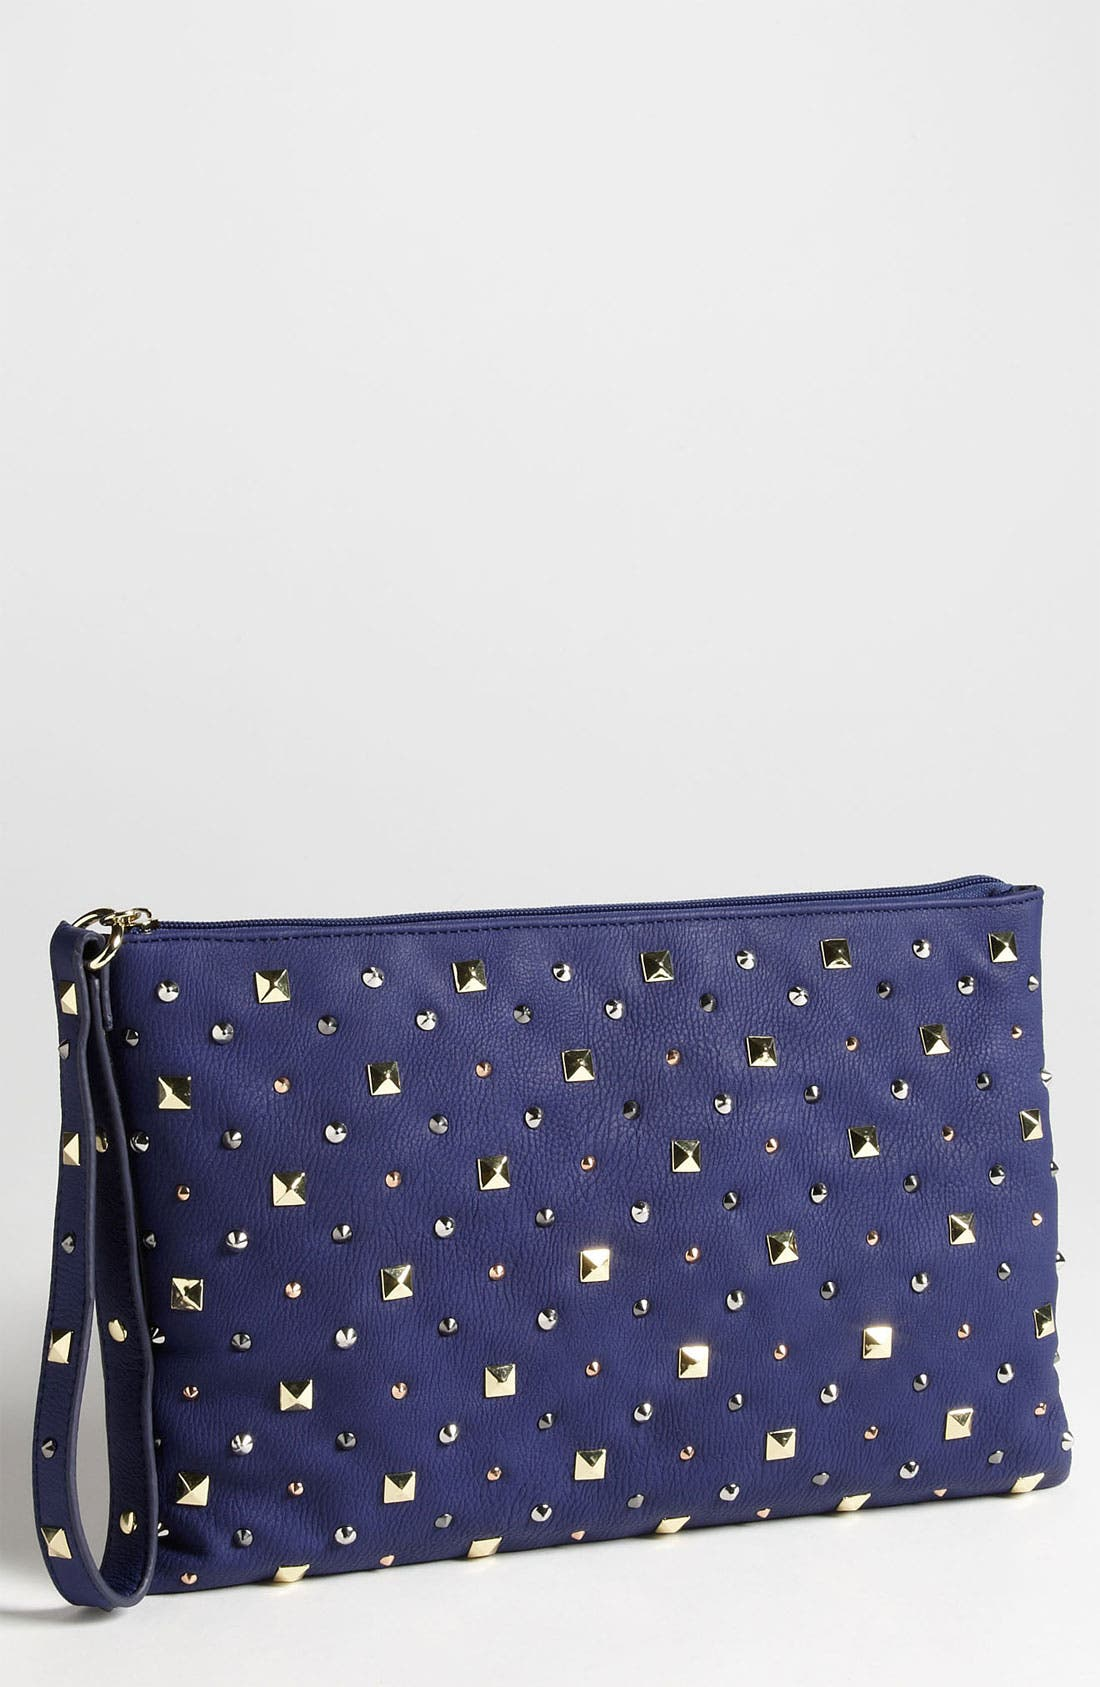 Alternate Image 1 Selected - Steve Madden 'Stud Love' Clutch